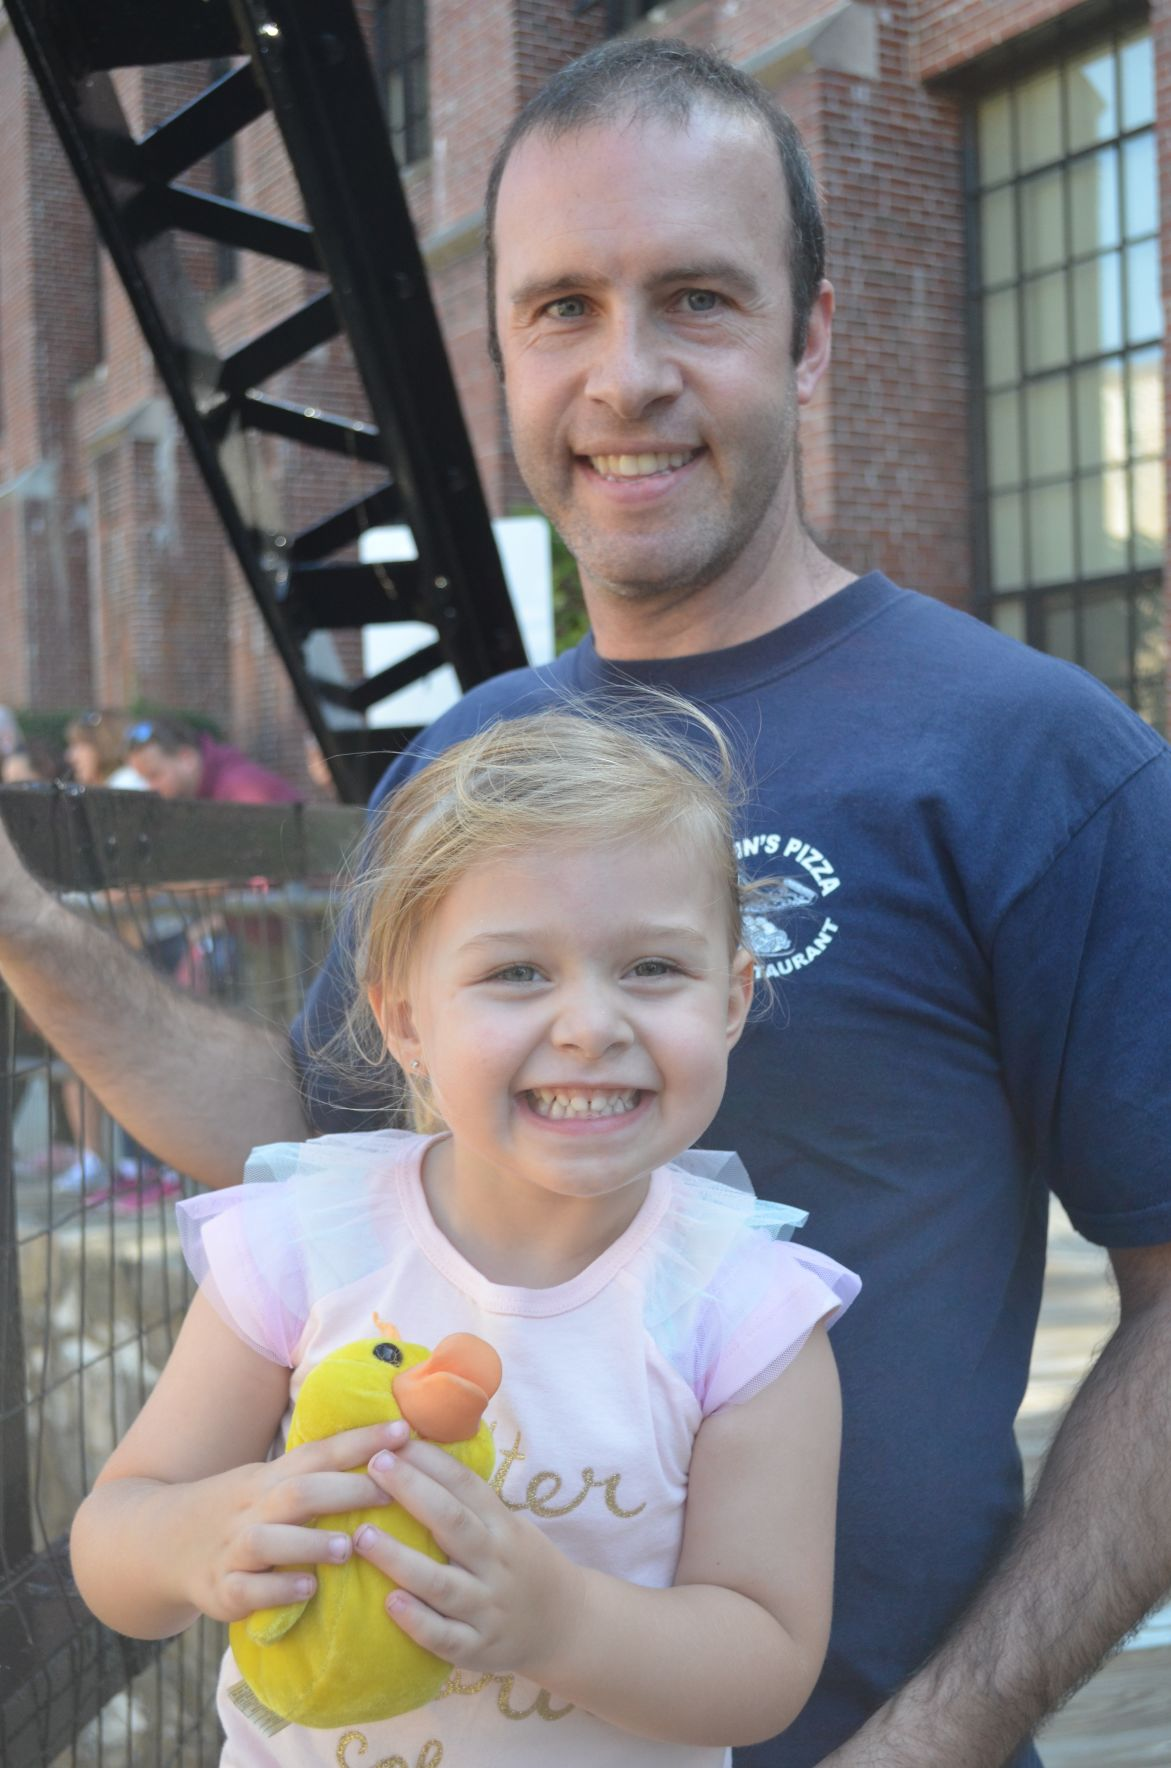 Thundermist Health Center marks 50th anniversary in West Warwick with duck race, family fun day